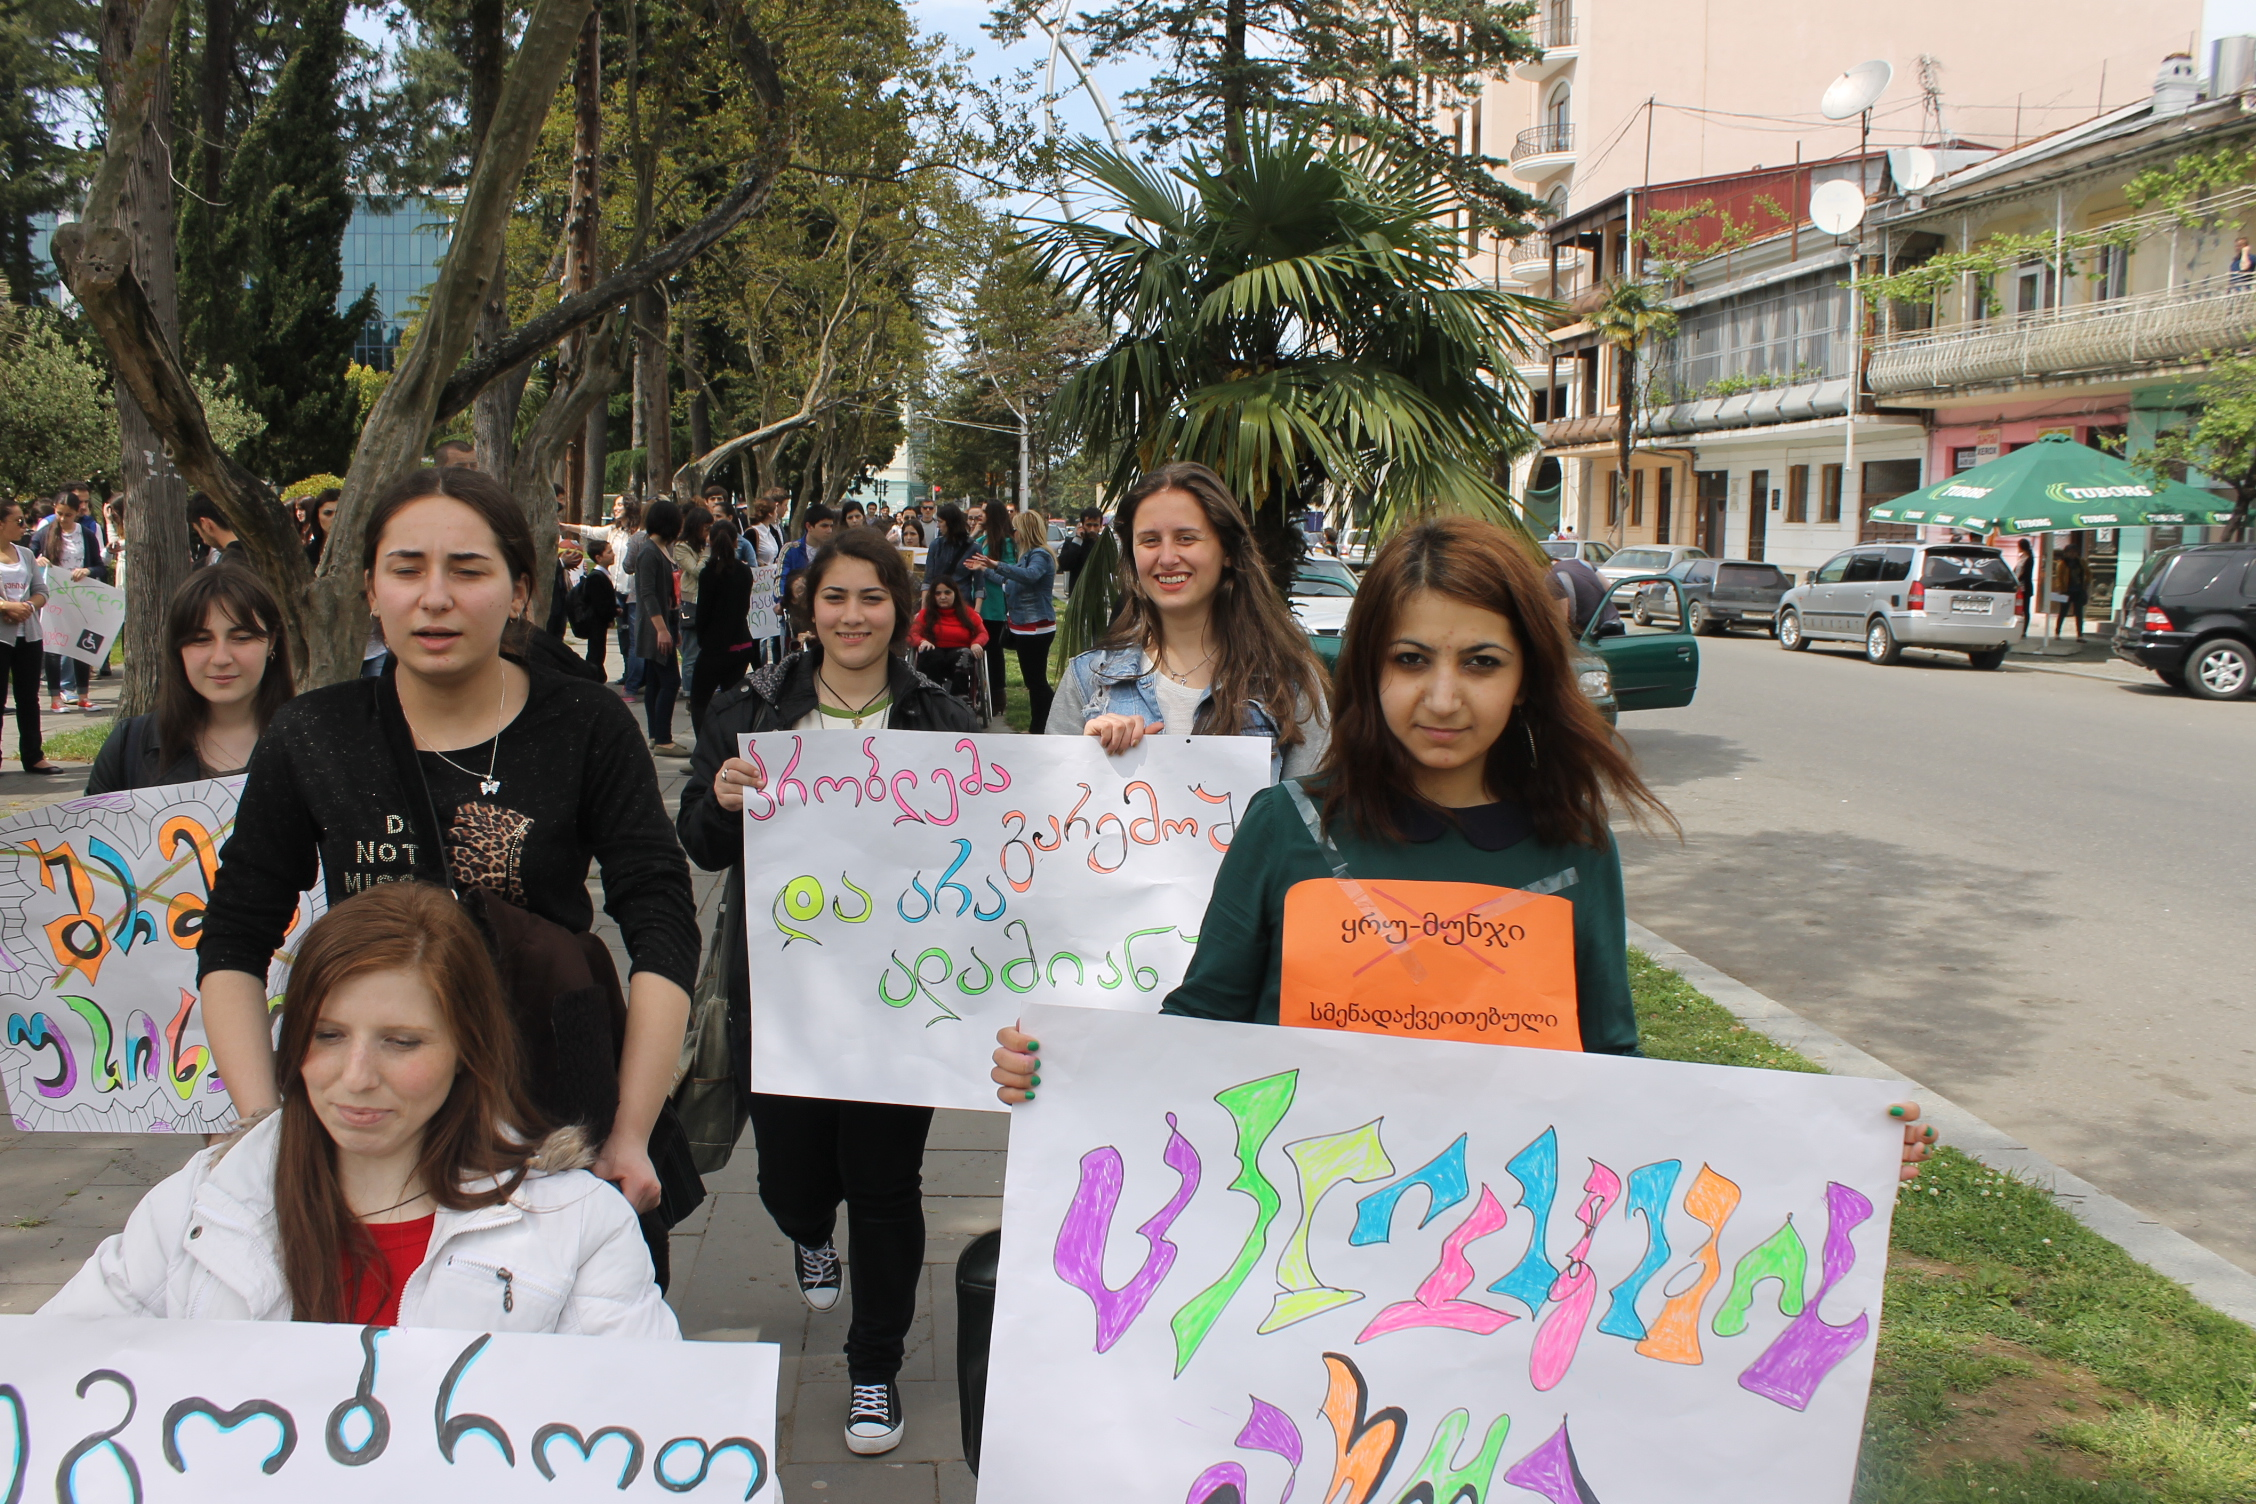 Youth with disabilities lead a march for change in Batumi, Georgia